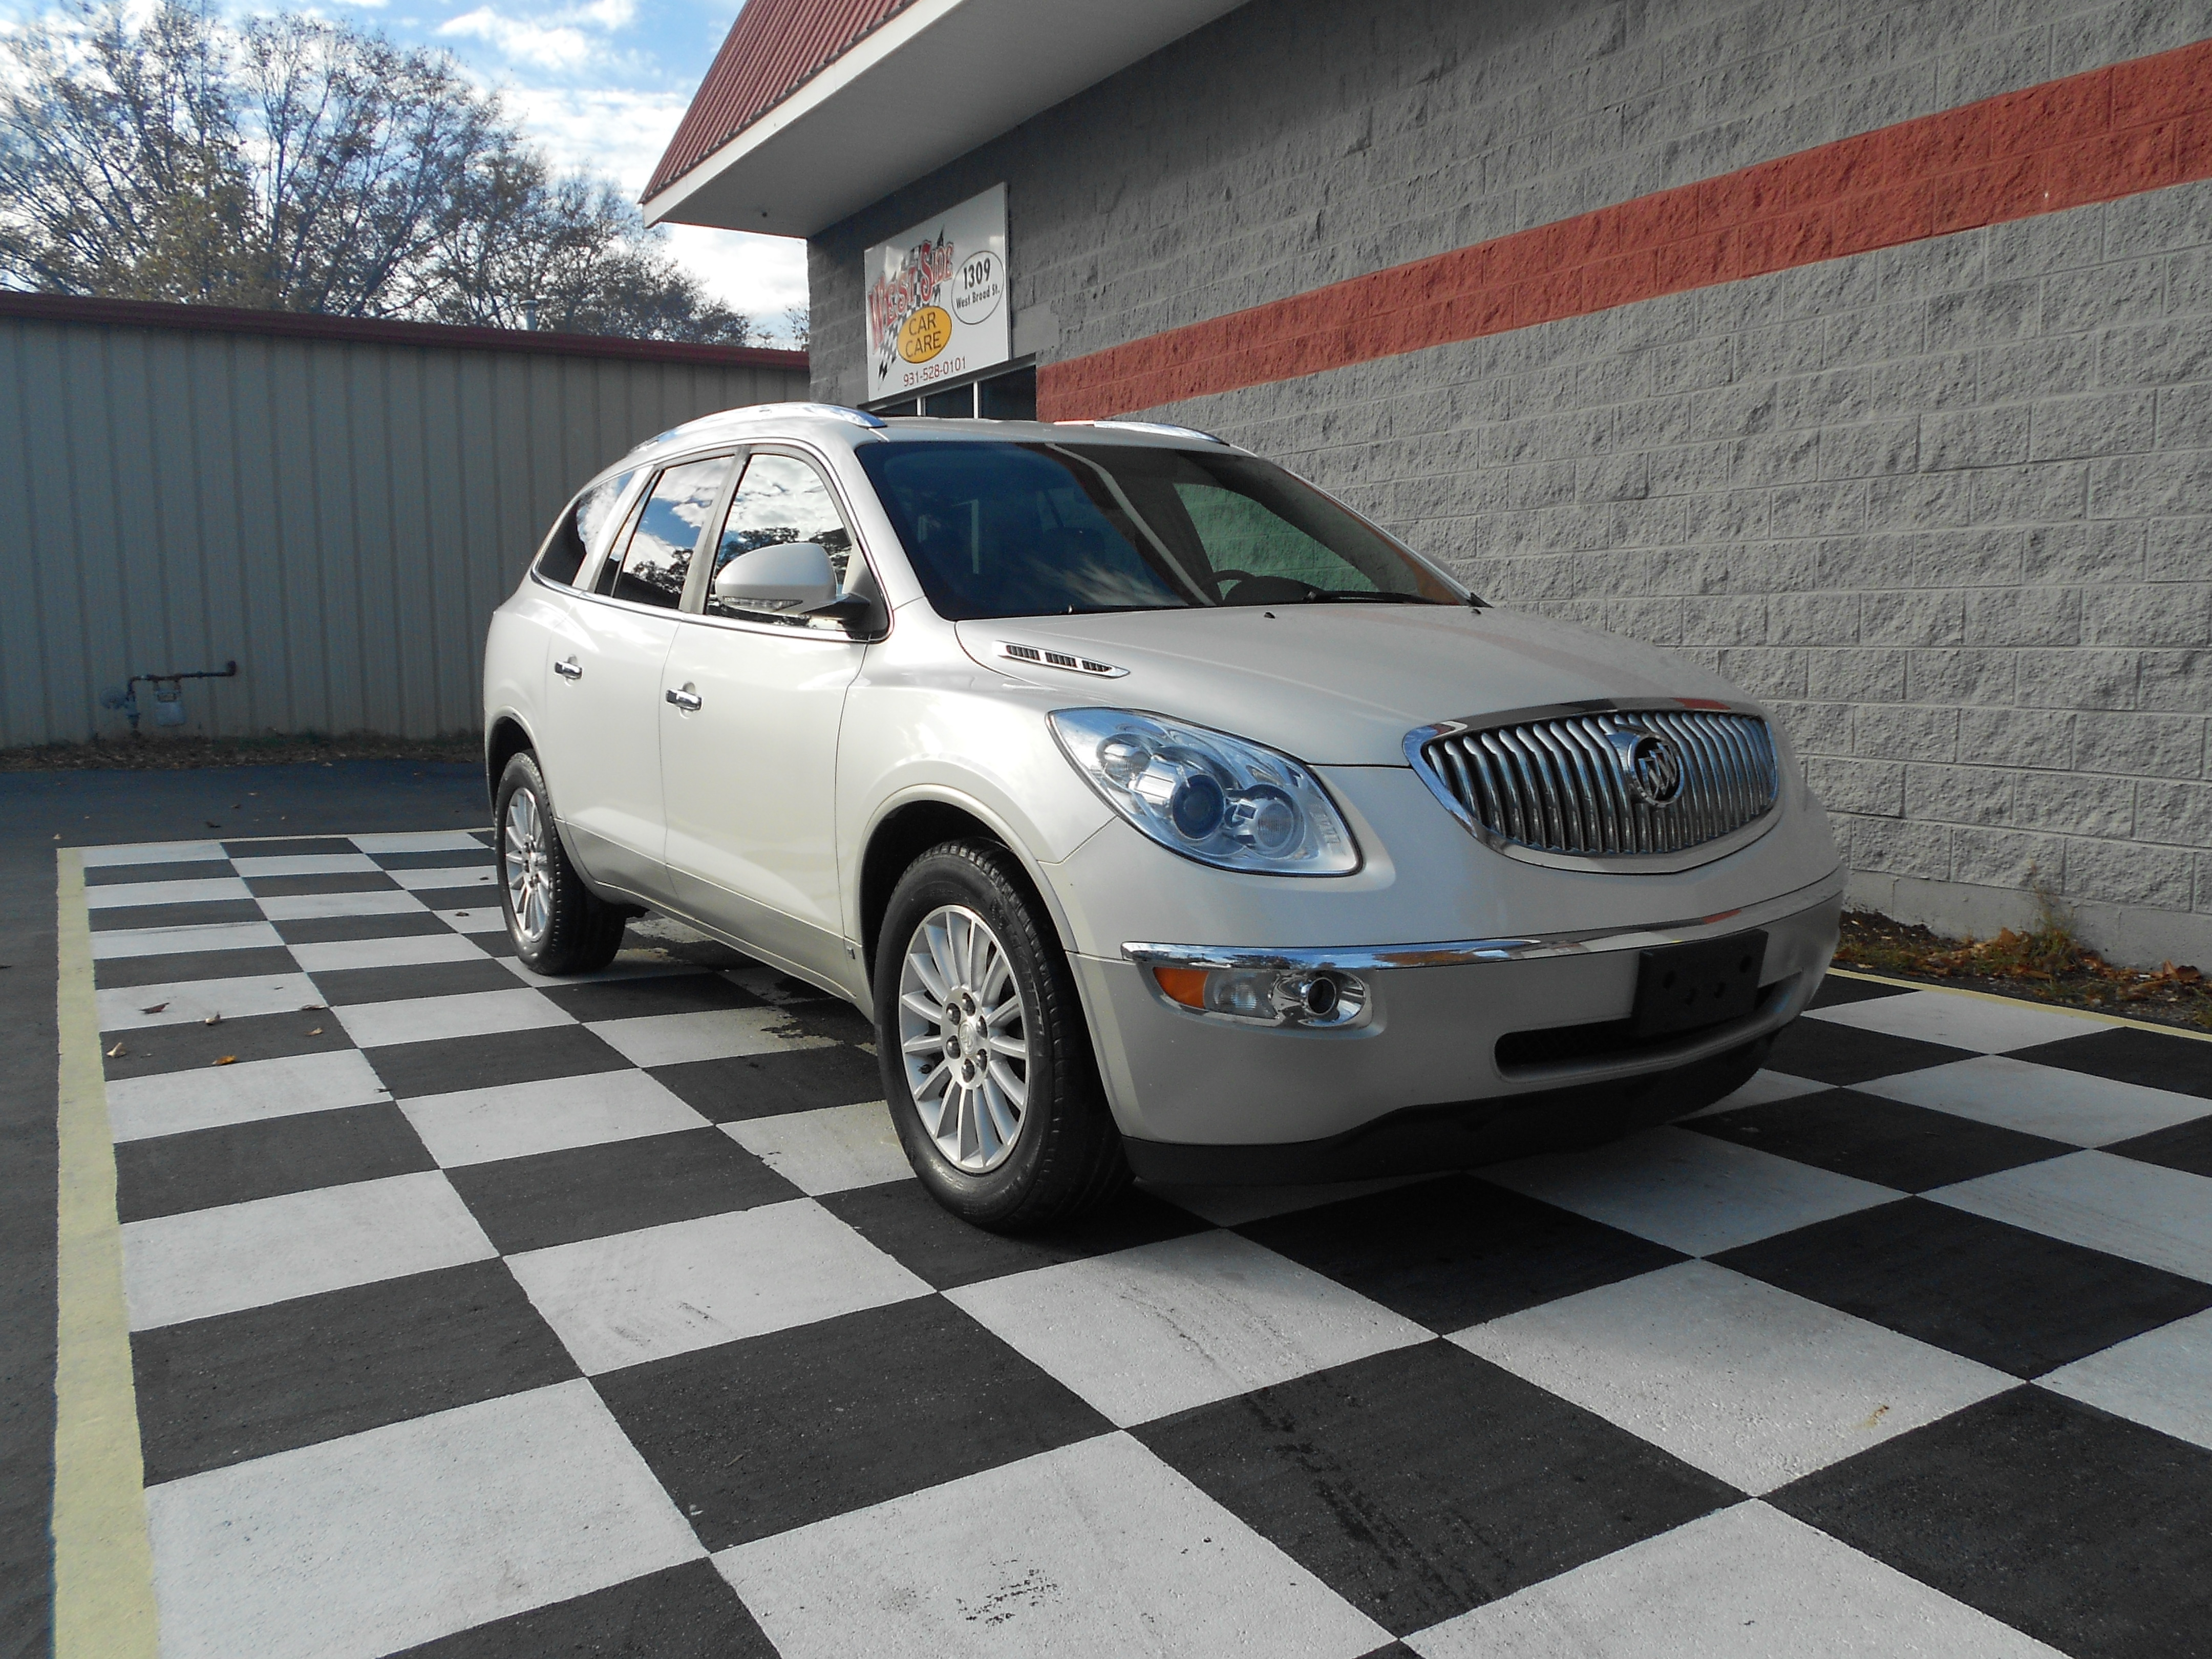 lacrosse and reviews enclave news cars used for top sale speed buick